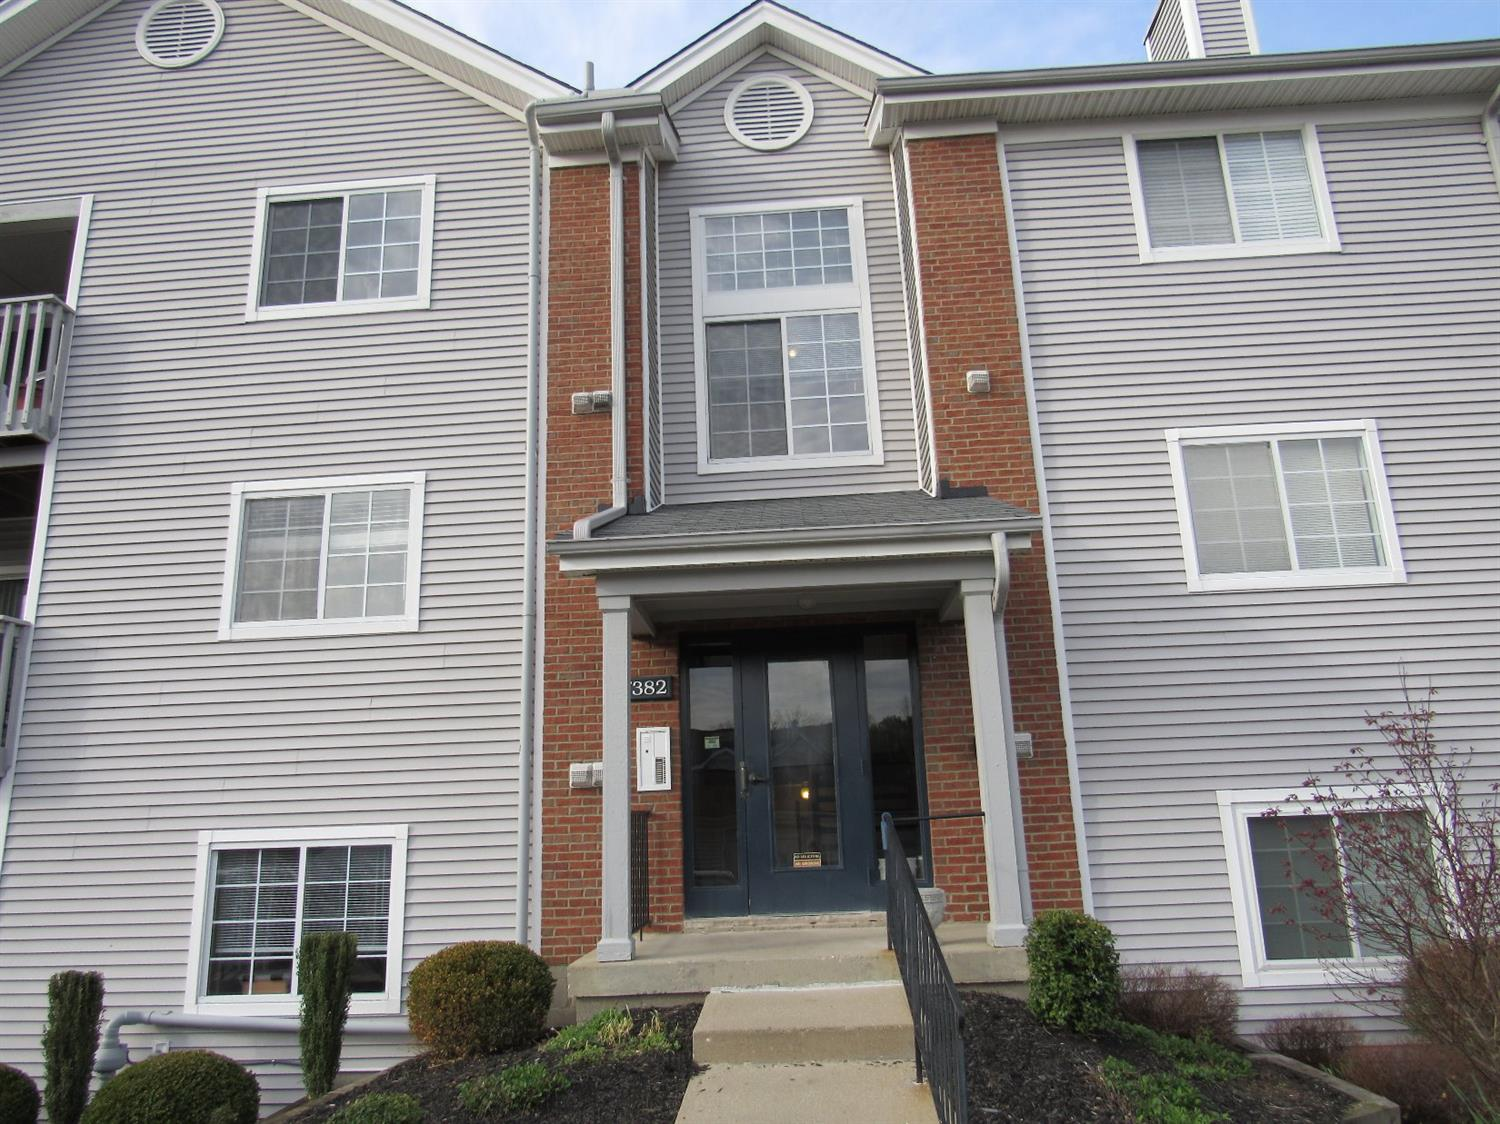 7382 Ridgepoint Dr 2 Anderson Twp Oh 45230 Listing